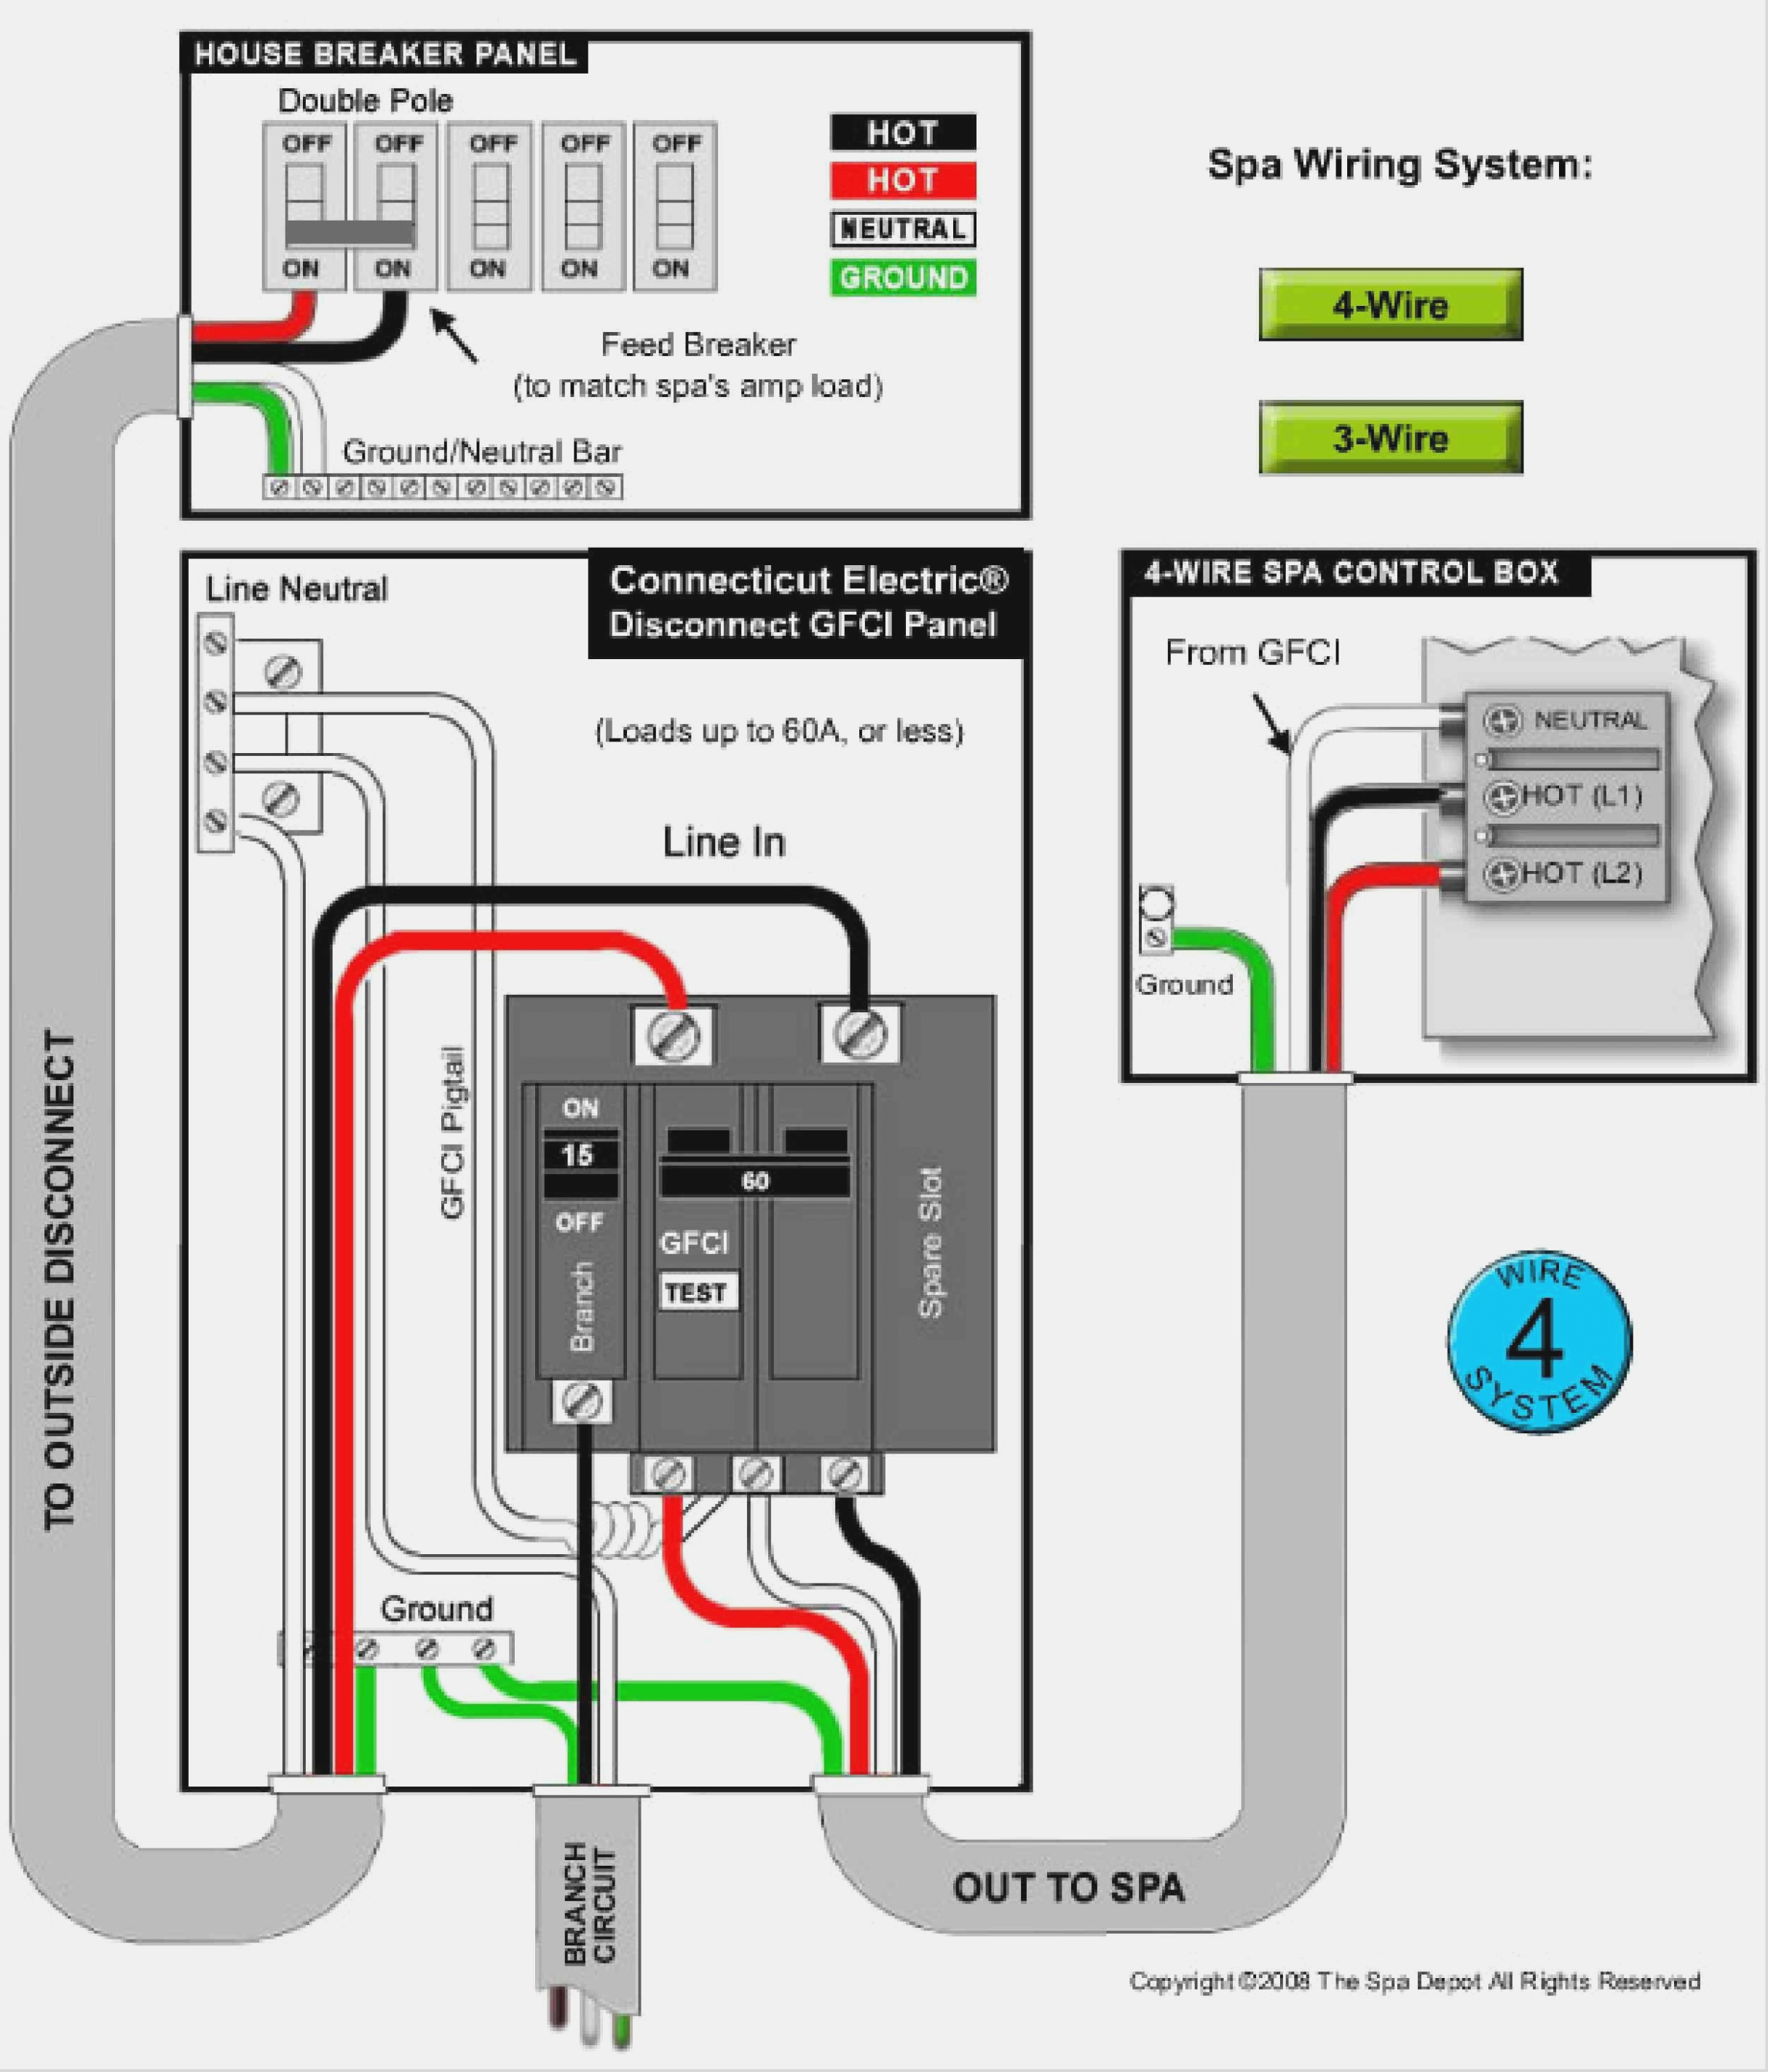 Electrical Circuit Breaker On Different Phases Manual Guide